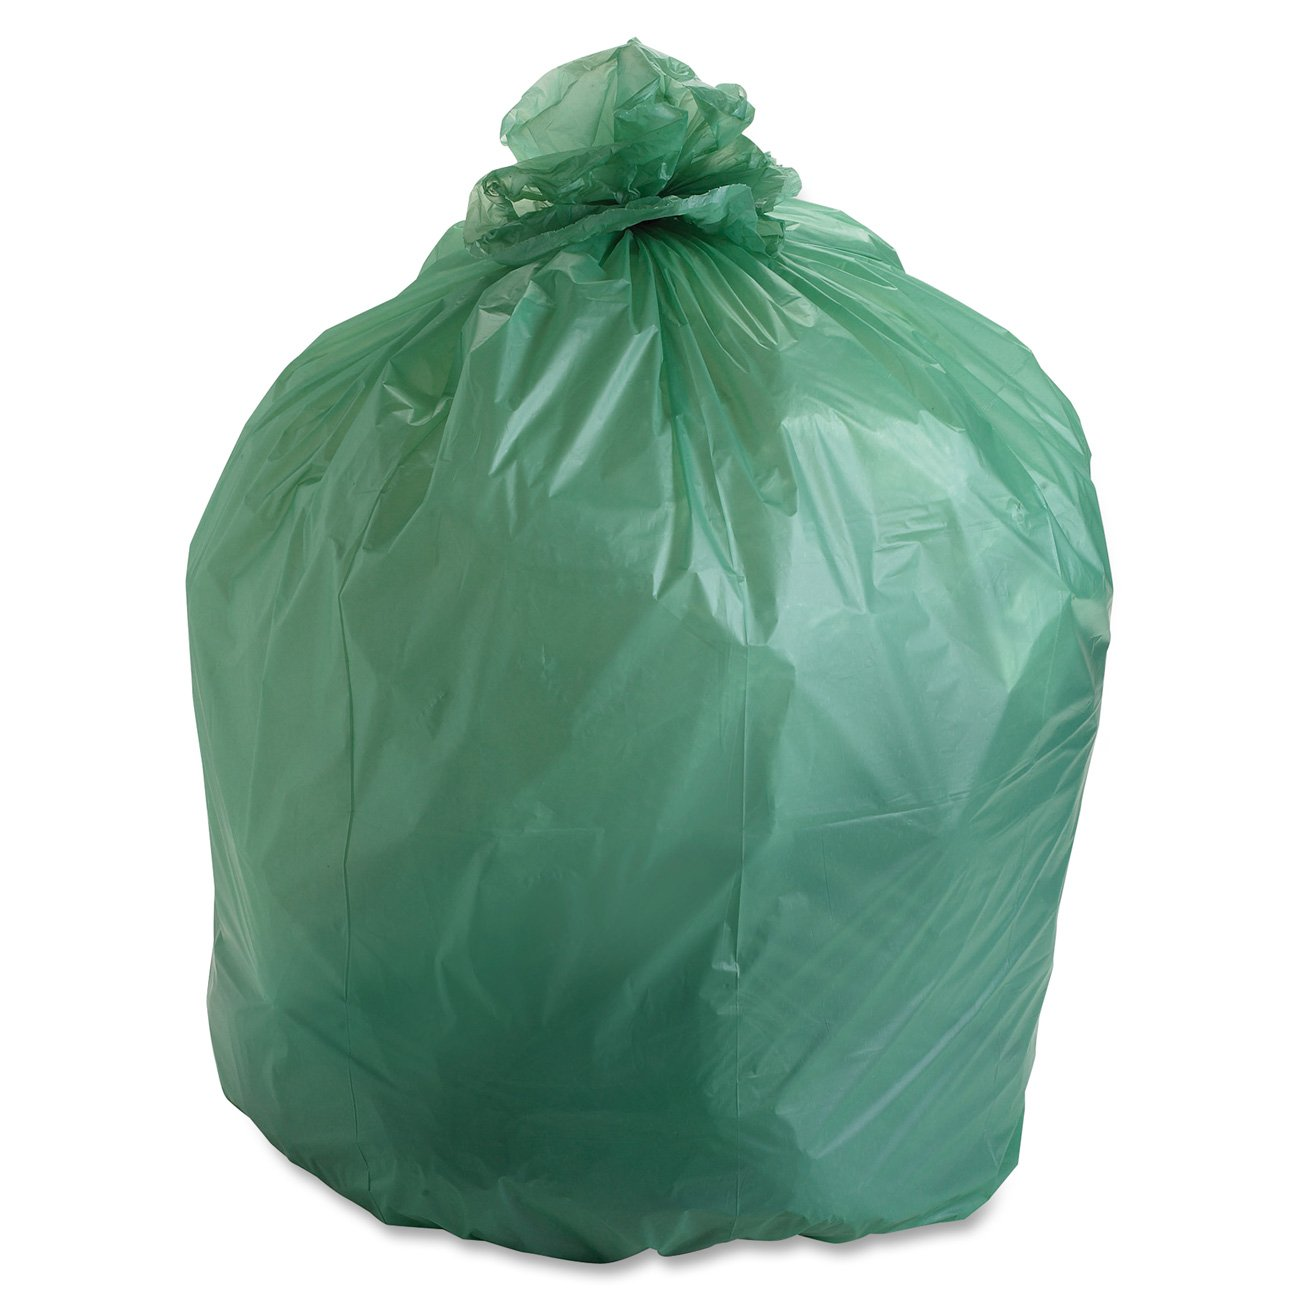 Reasons to Use Biodegradable Trash Bags